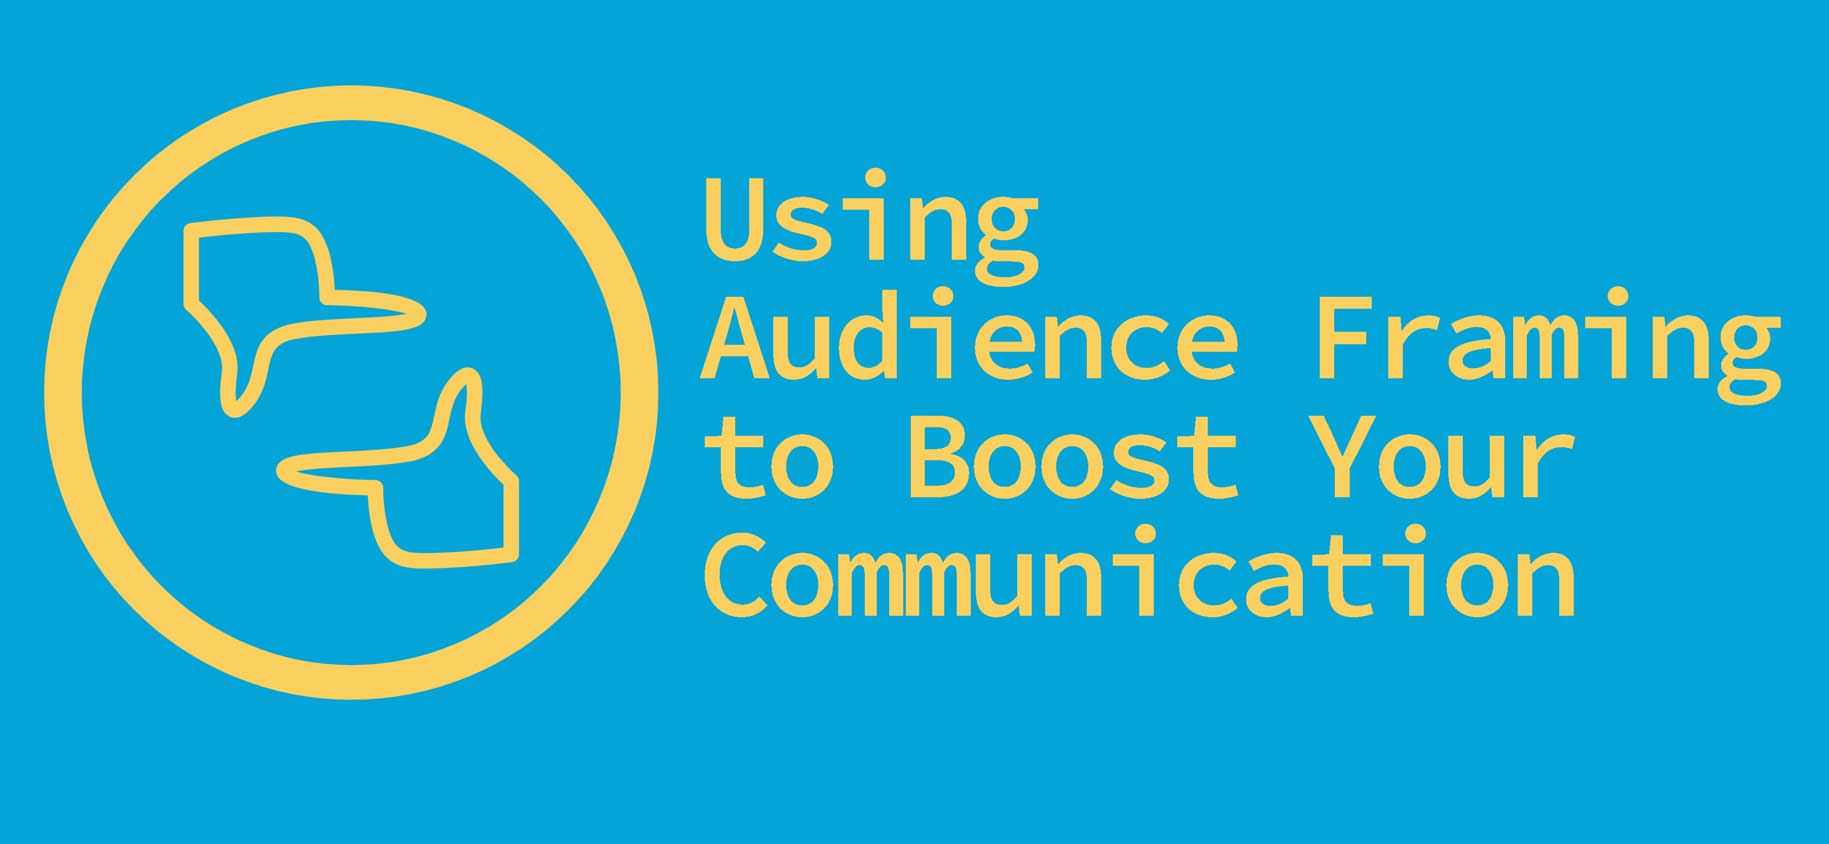 How to use audience framing as a communication skill